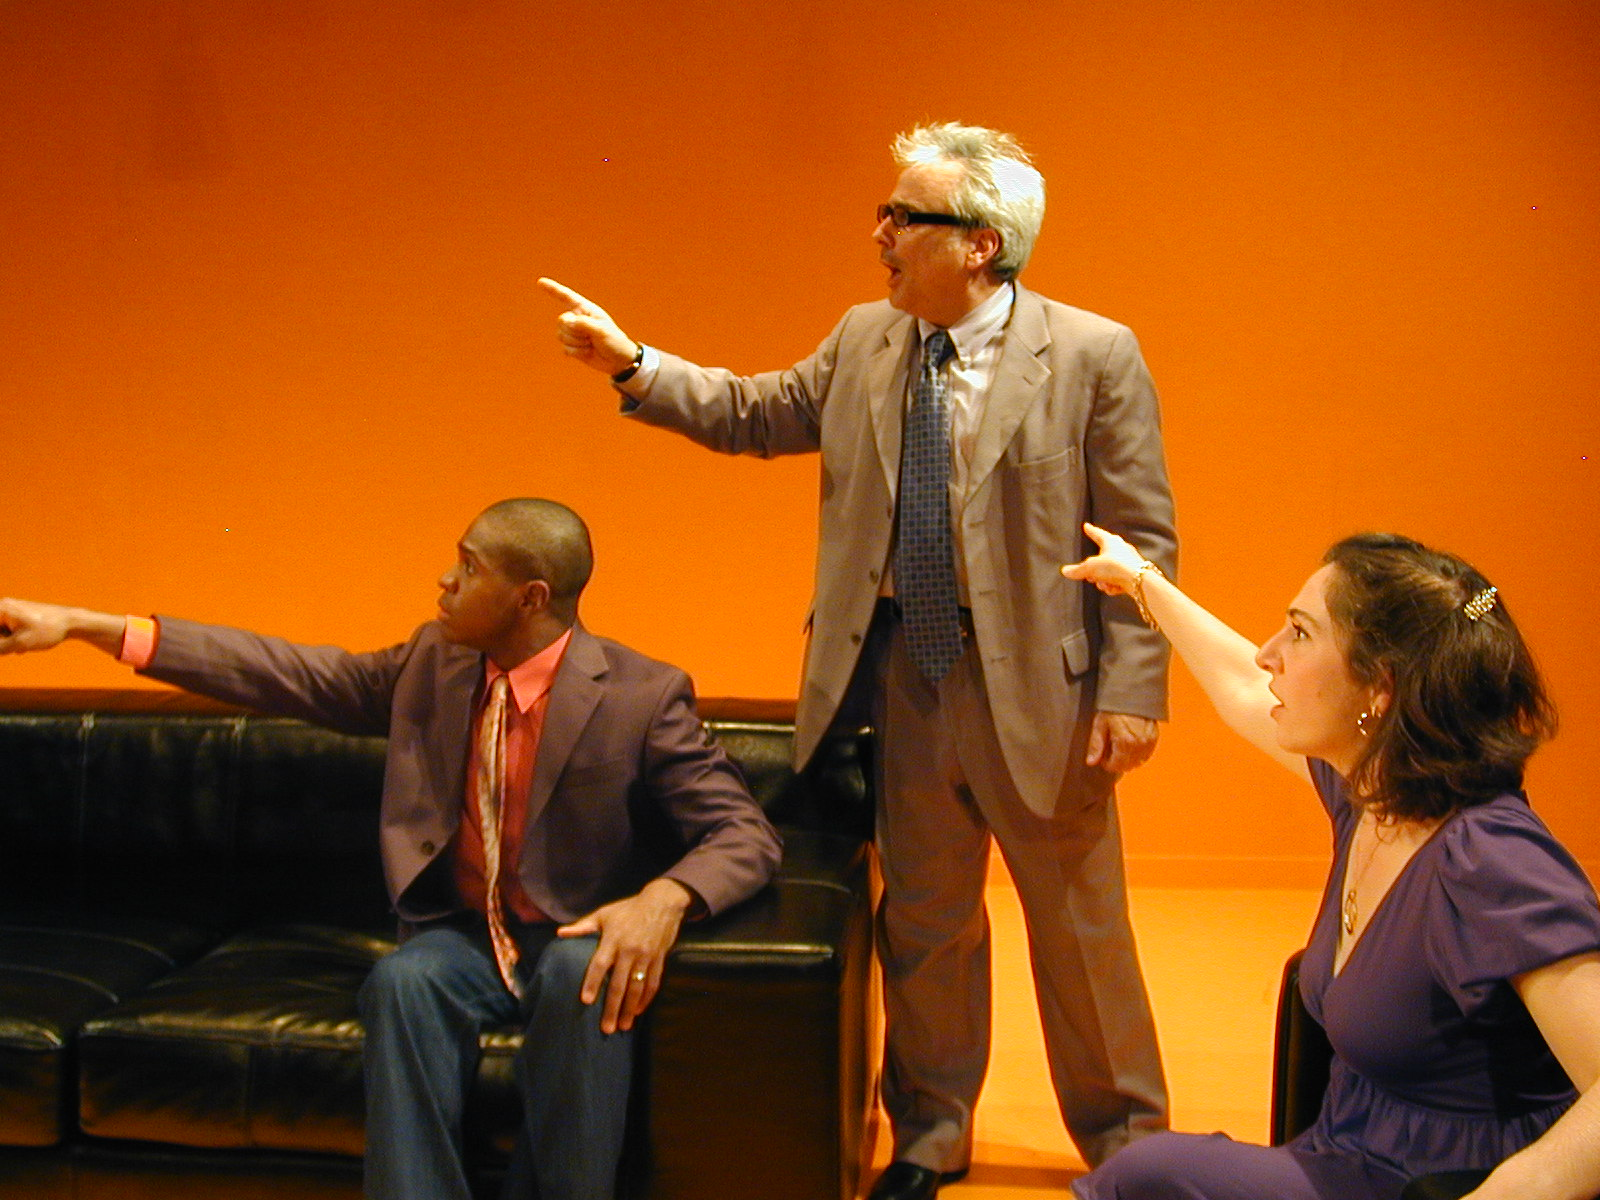 Donnell Hill as Mr. Martin, David Sinaiko as Mr. Smith, and Caitlyn as Mrs. Martin in Cutting Ball Theatre's acclaimed  The Bald Soprano.